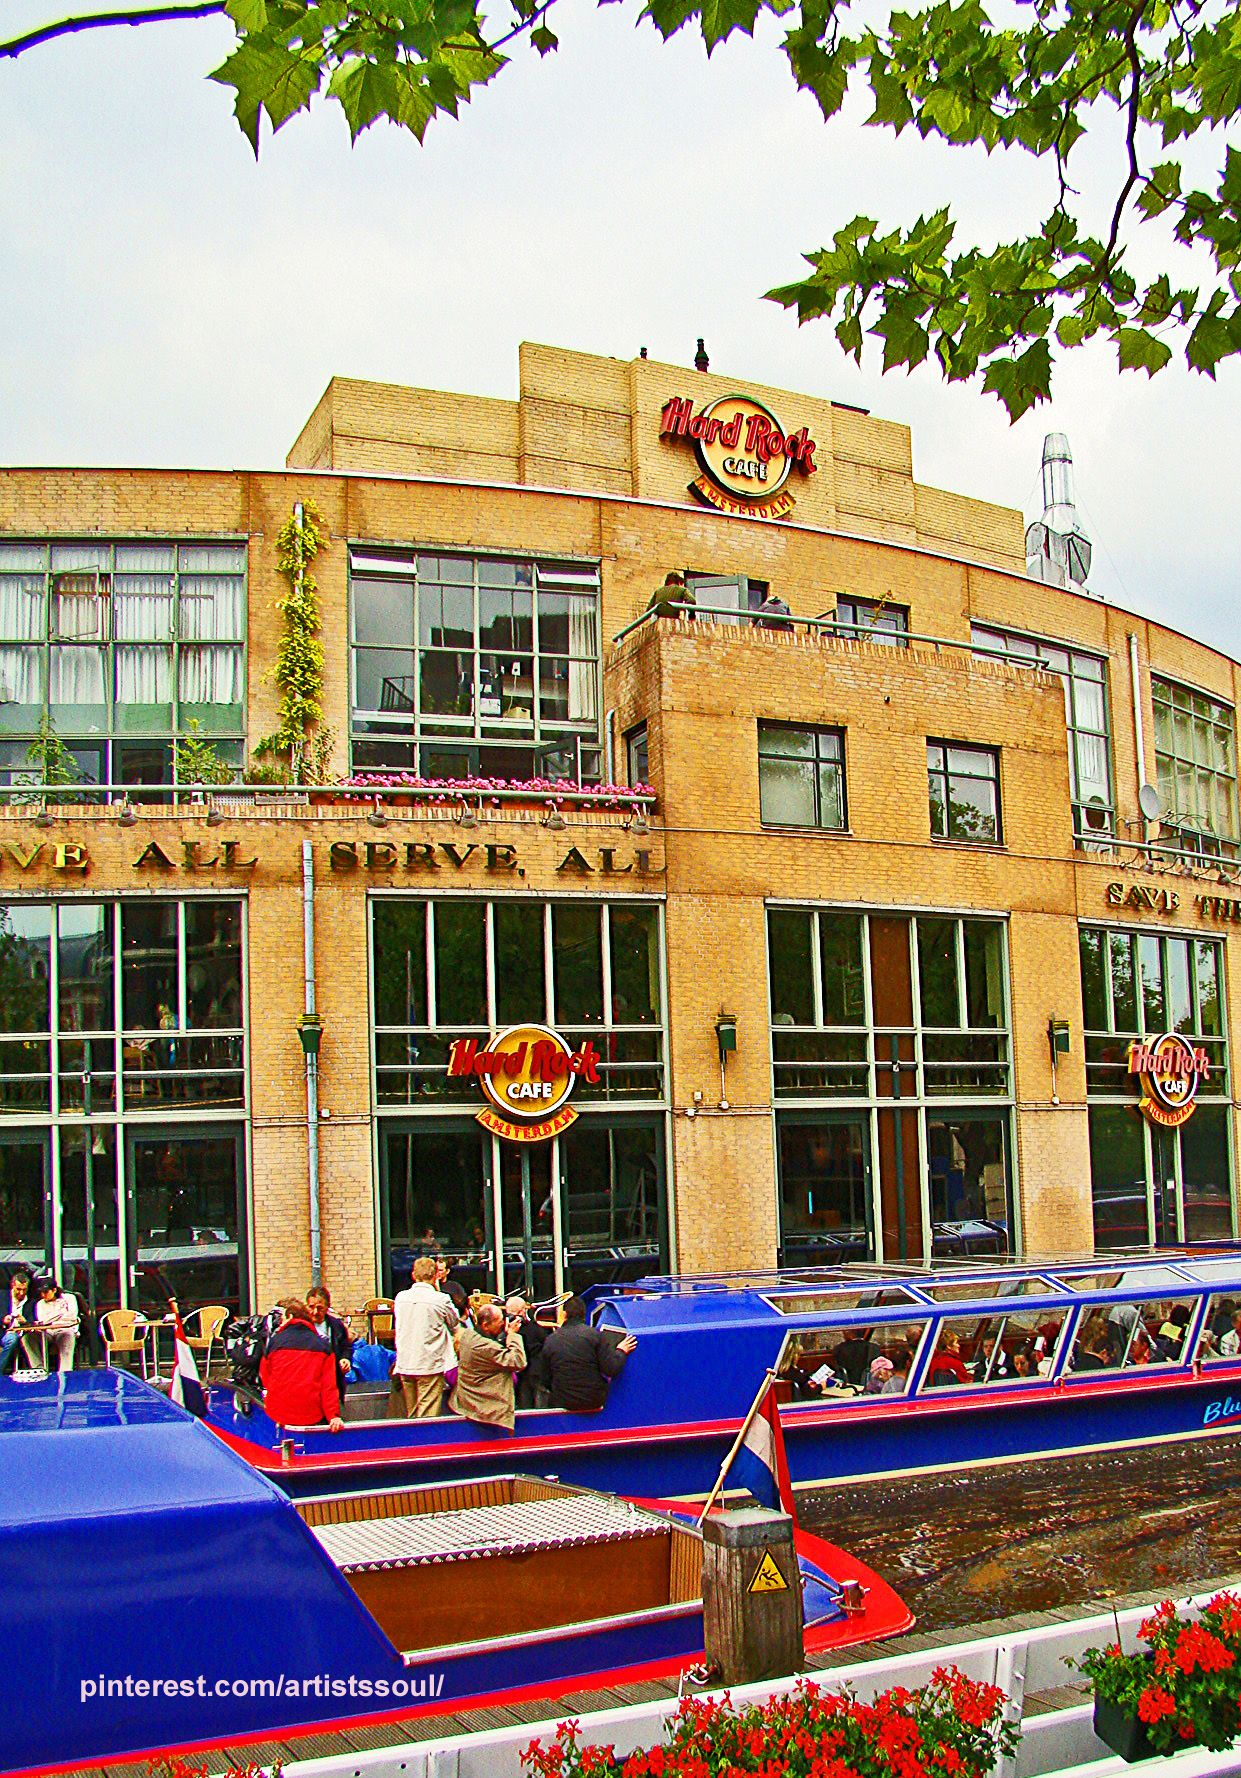 Hard Rock Cafe Amsterdam Which We Did Not Eat At And The Boat Tour Company That We Took In The Rain Hard Rock Cafe Travel Tour Companies Hard Rock